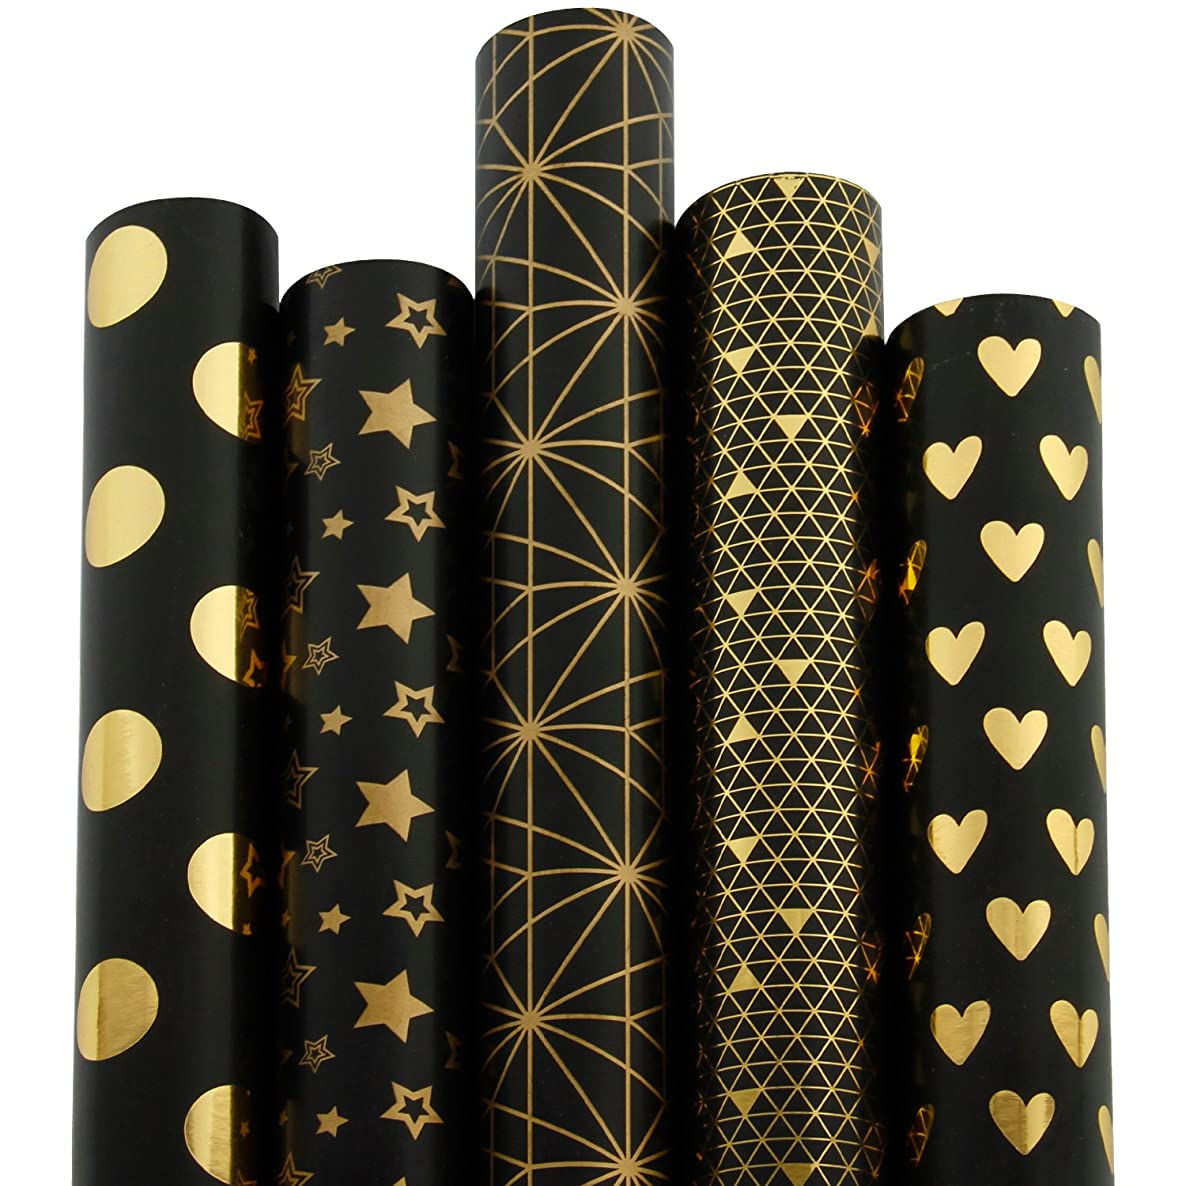 RUSPEPA Gift Wrapping Paper Roll-Black and Gold Foil Pattern for Wedding,Birthdays, Valentines, Christmas-5 Roll-30Inch X 10Feet Per Roll